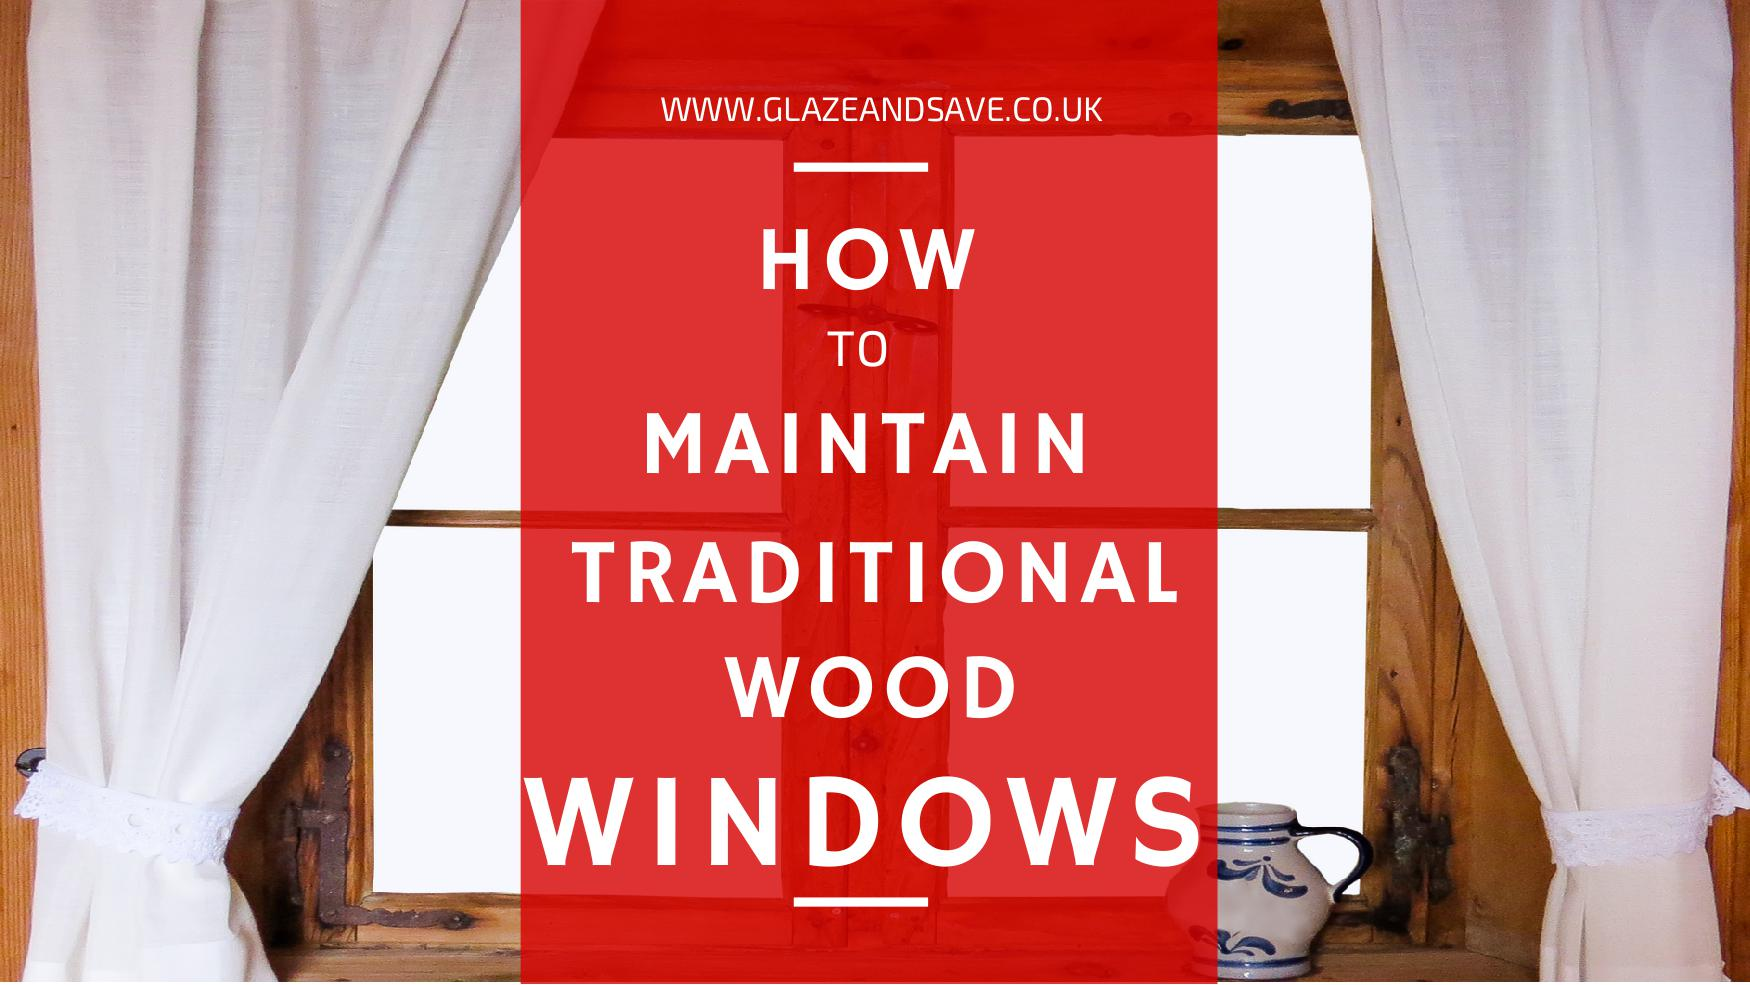 How to maintain traditional wood windows by Glaze & Save bespoke magnetic secondary glazing and draught proofing based in Perth Scotland.